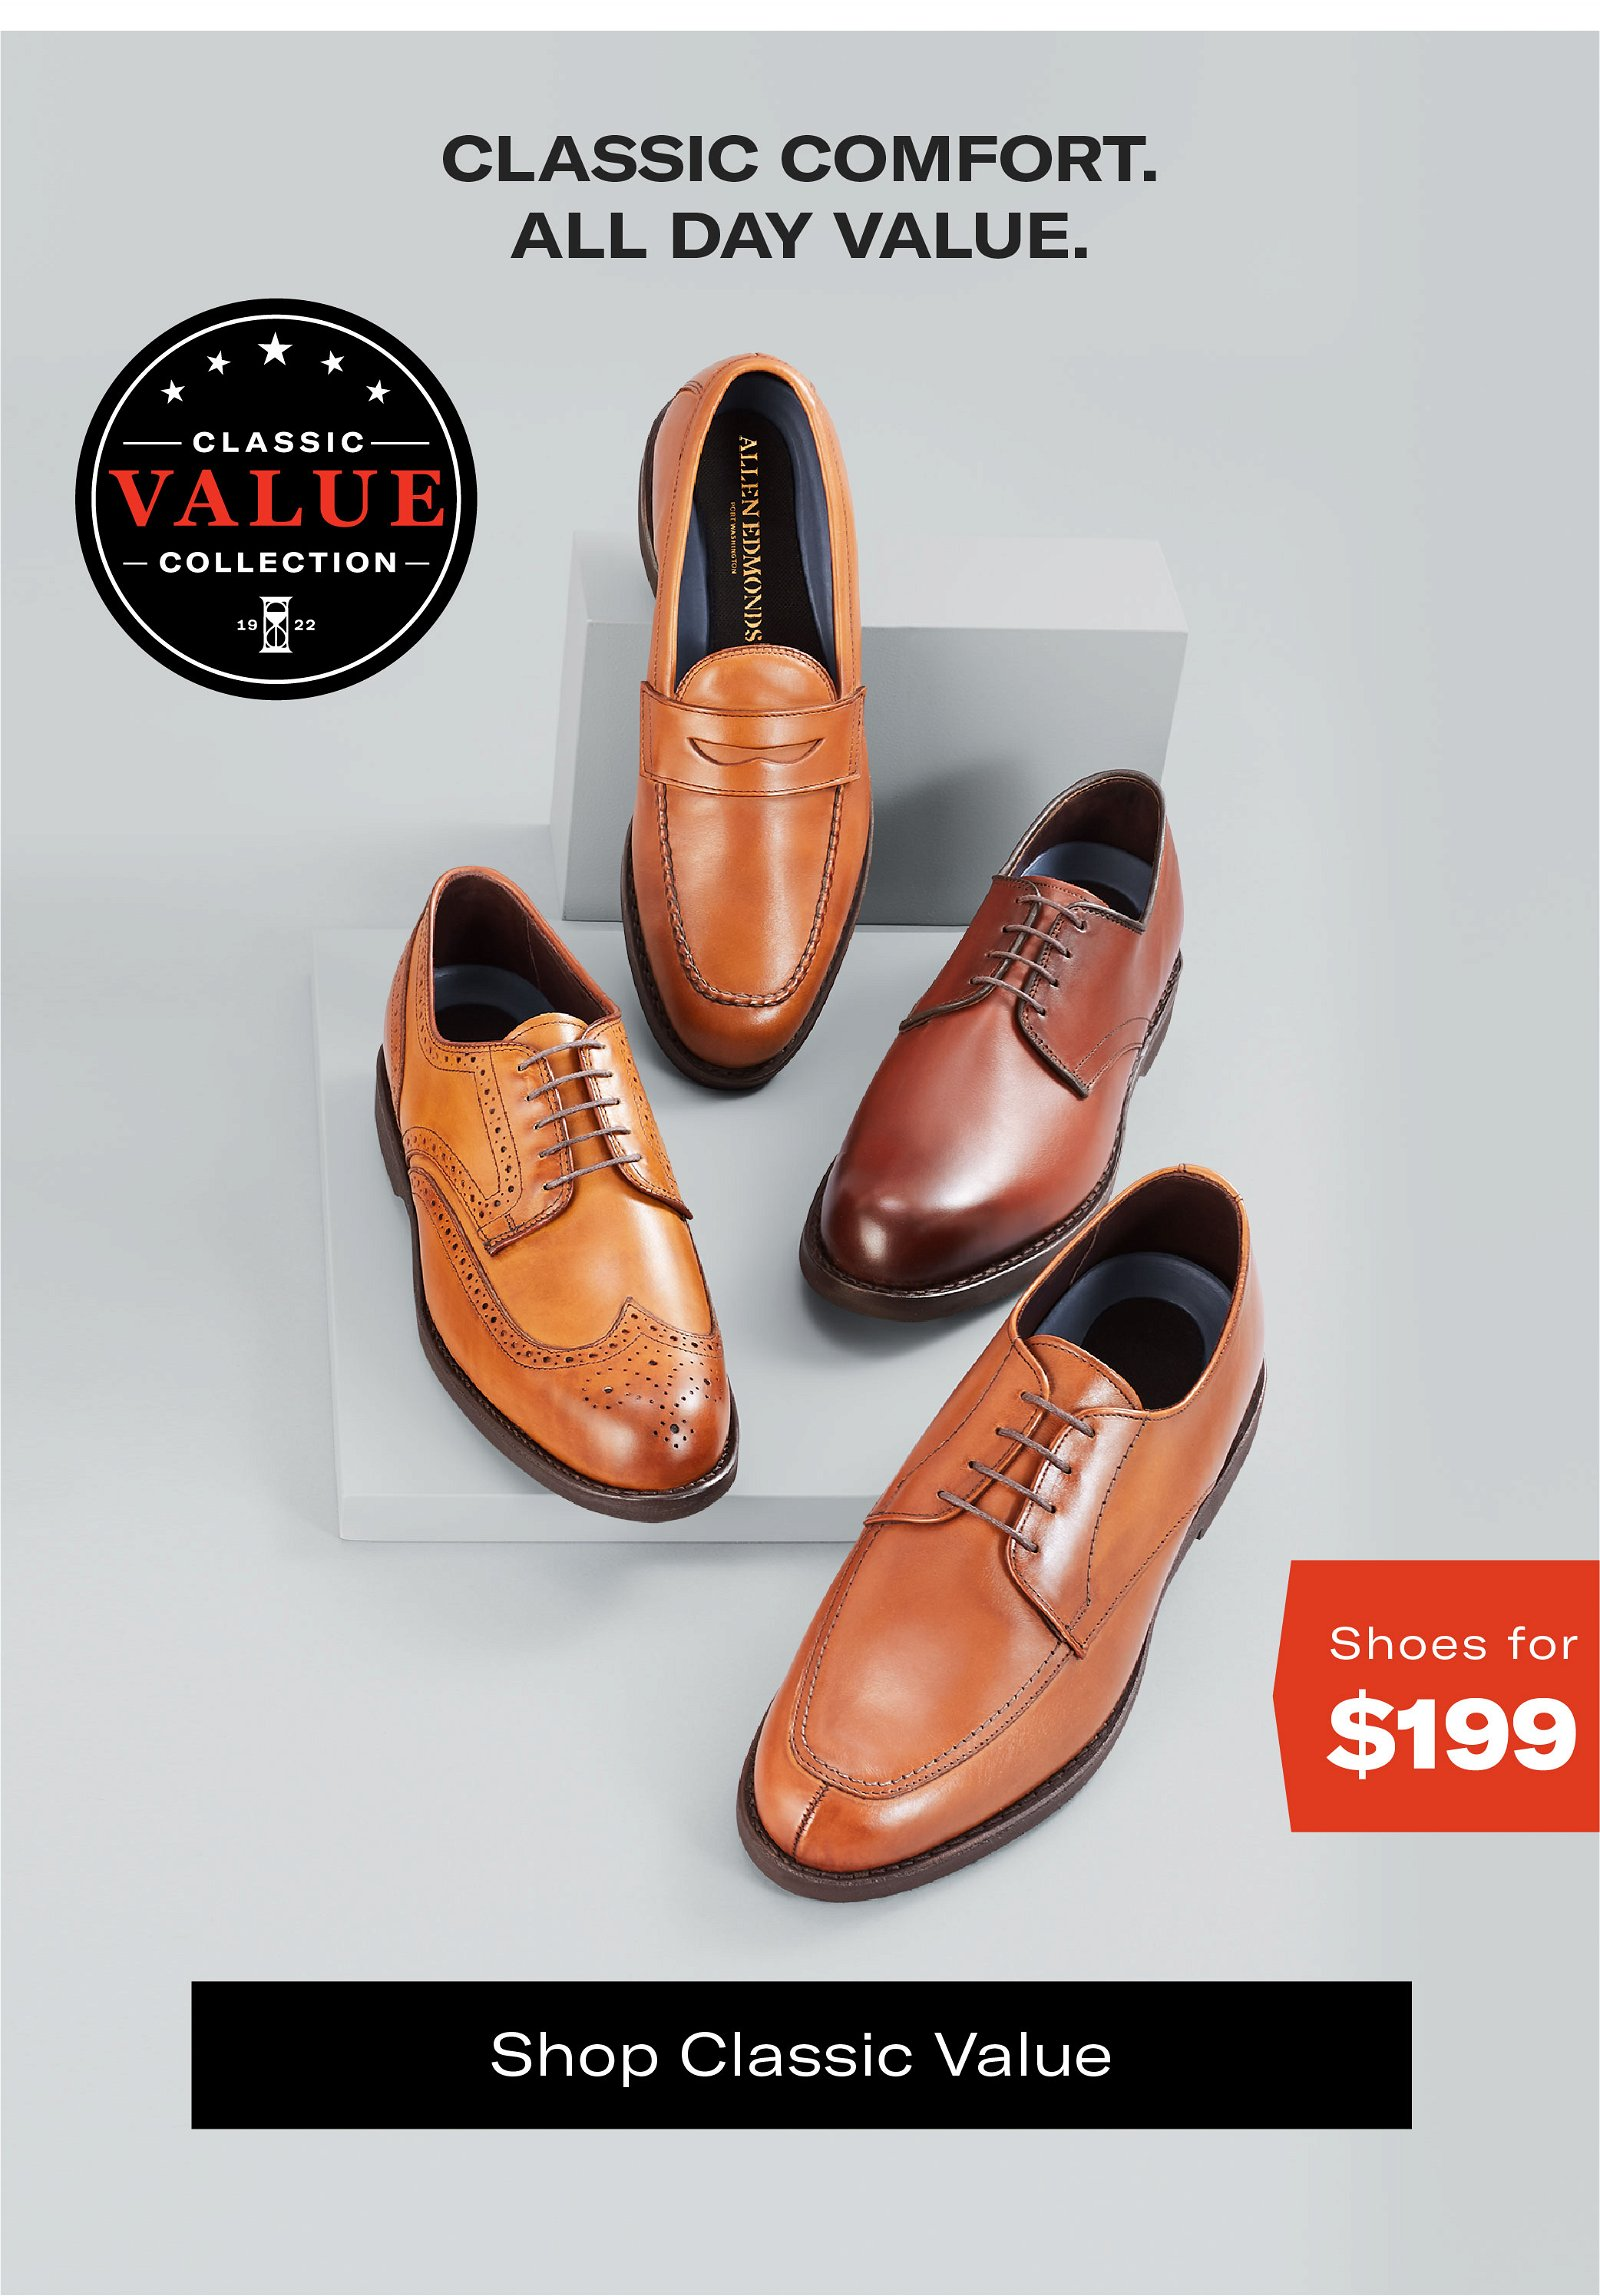 Classic Comfort, All Day Value, Classic Value Collection Shoes for $199